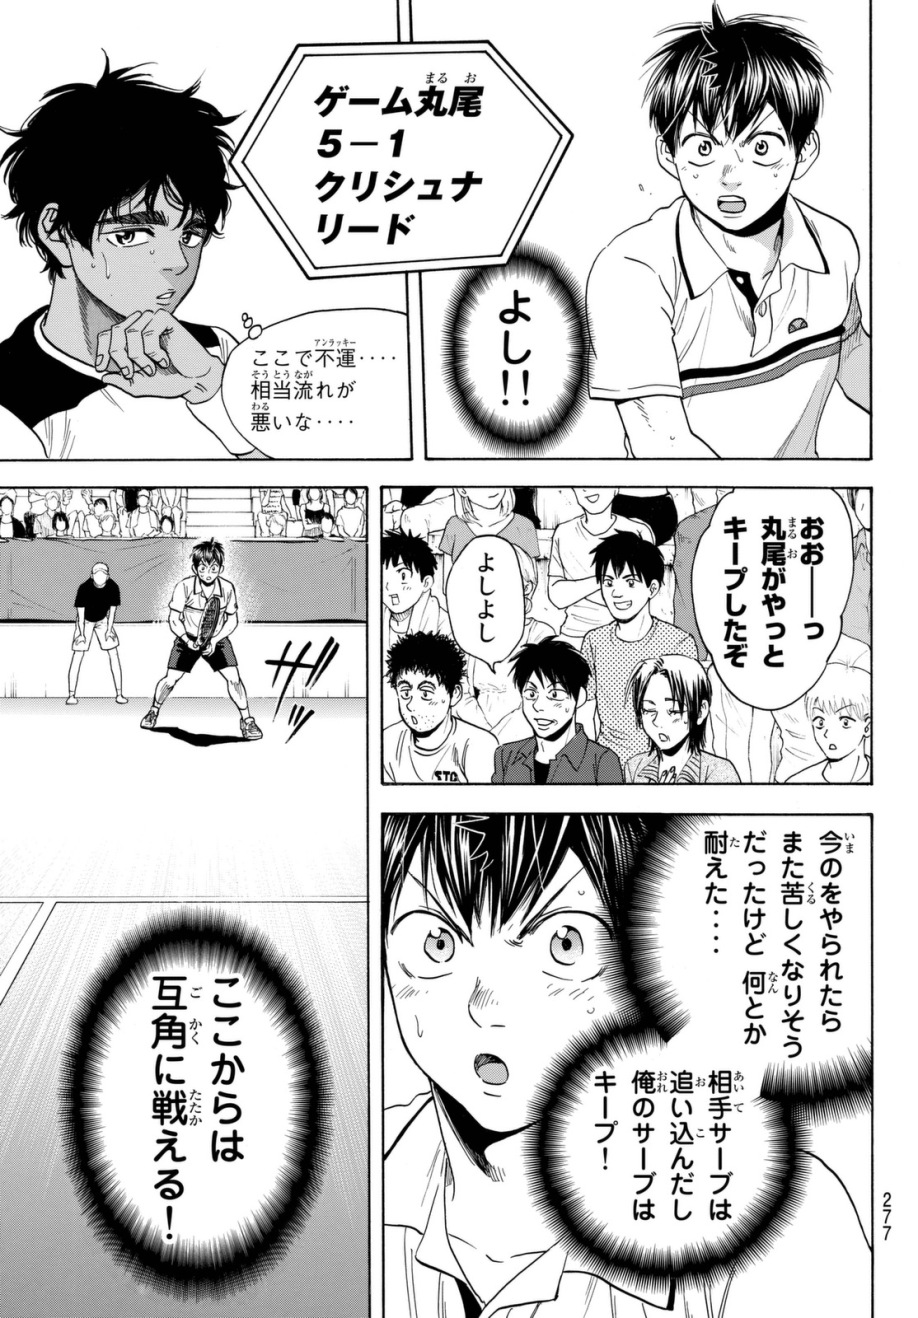 Keiryo Tourney Arc | Ronmamita's Blog